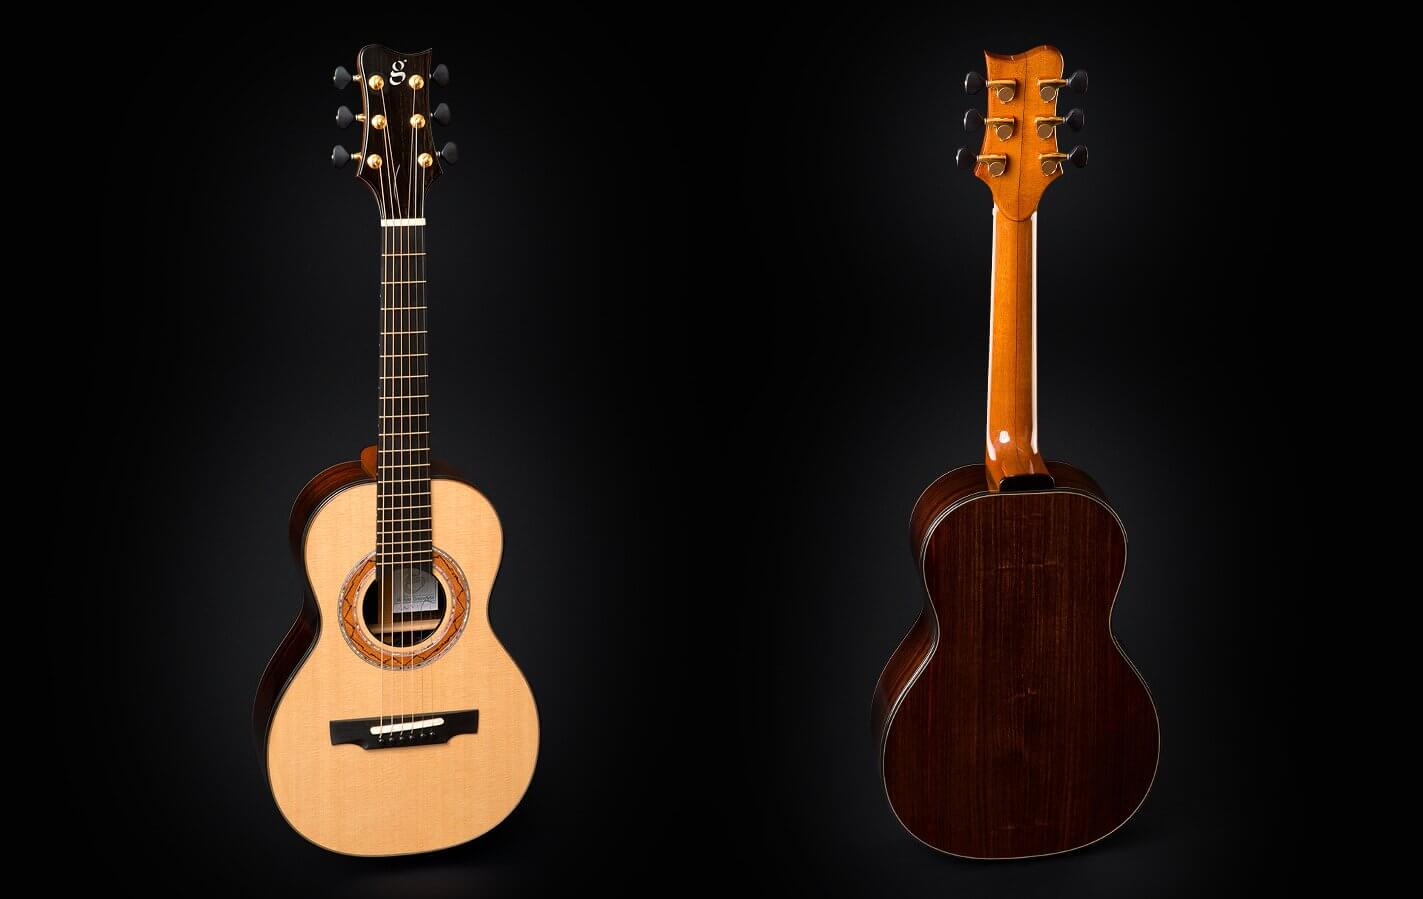 Greenfield Guitars | Fine handmade Acoustic Guitars Model G5, soprano guitar, Sitka spruce, east Indian rosewood